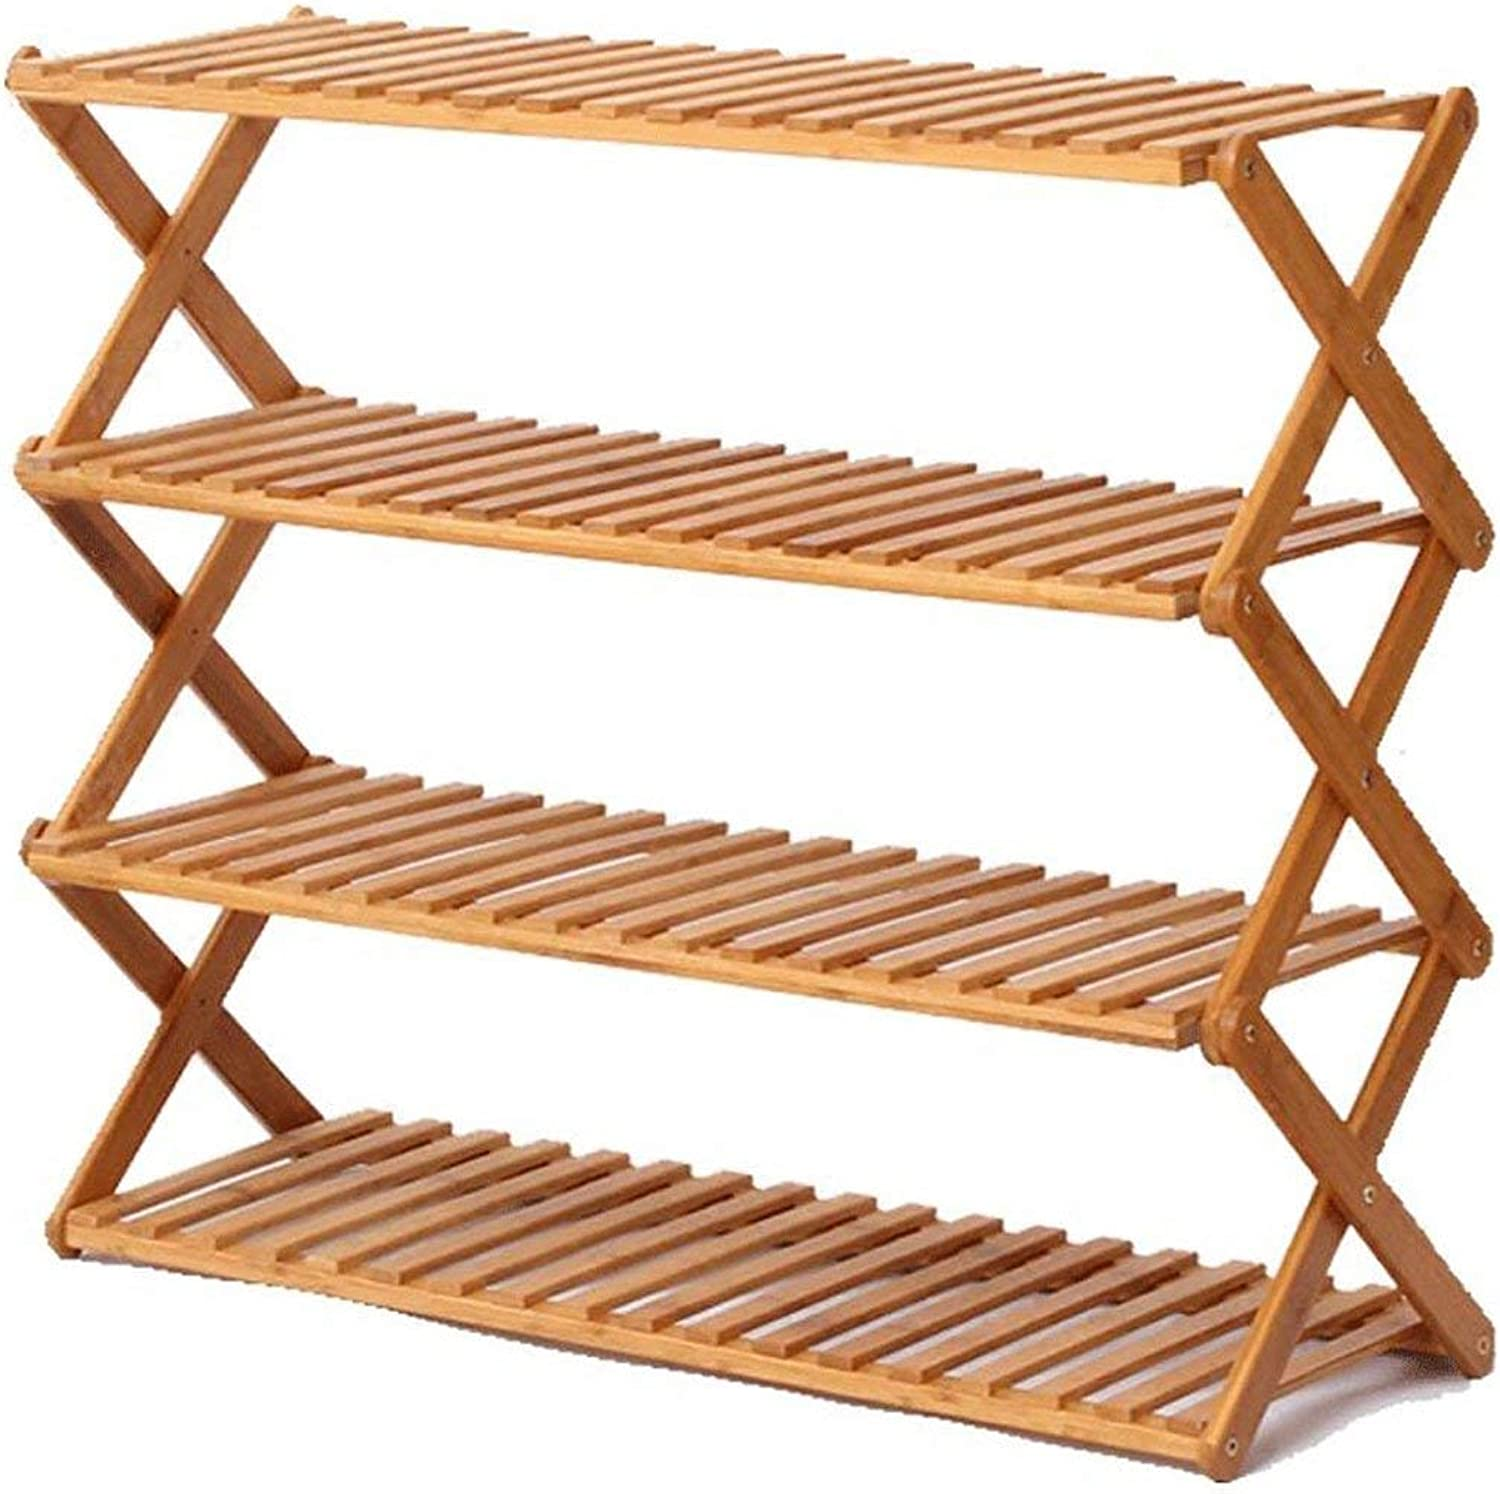 Gifts & Decor Plant Stand Shelf Flower Racks Solid Wood Flower Stand fold Plant Stand Indoor Balcony Flower Stand Multi-Layer Floor Shelf Three-Dimensional Flower Stand (Size   X-Large)